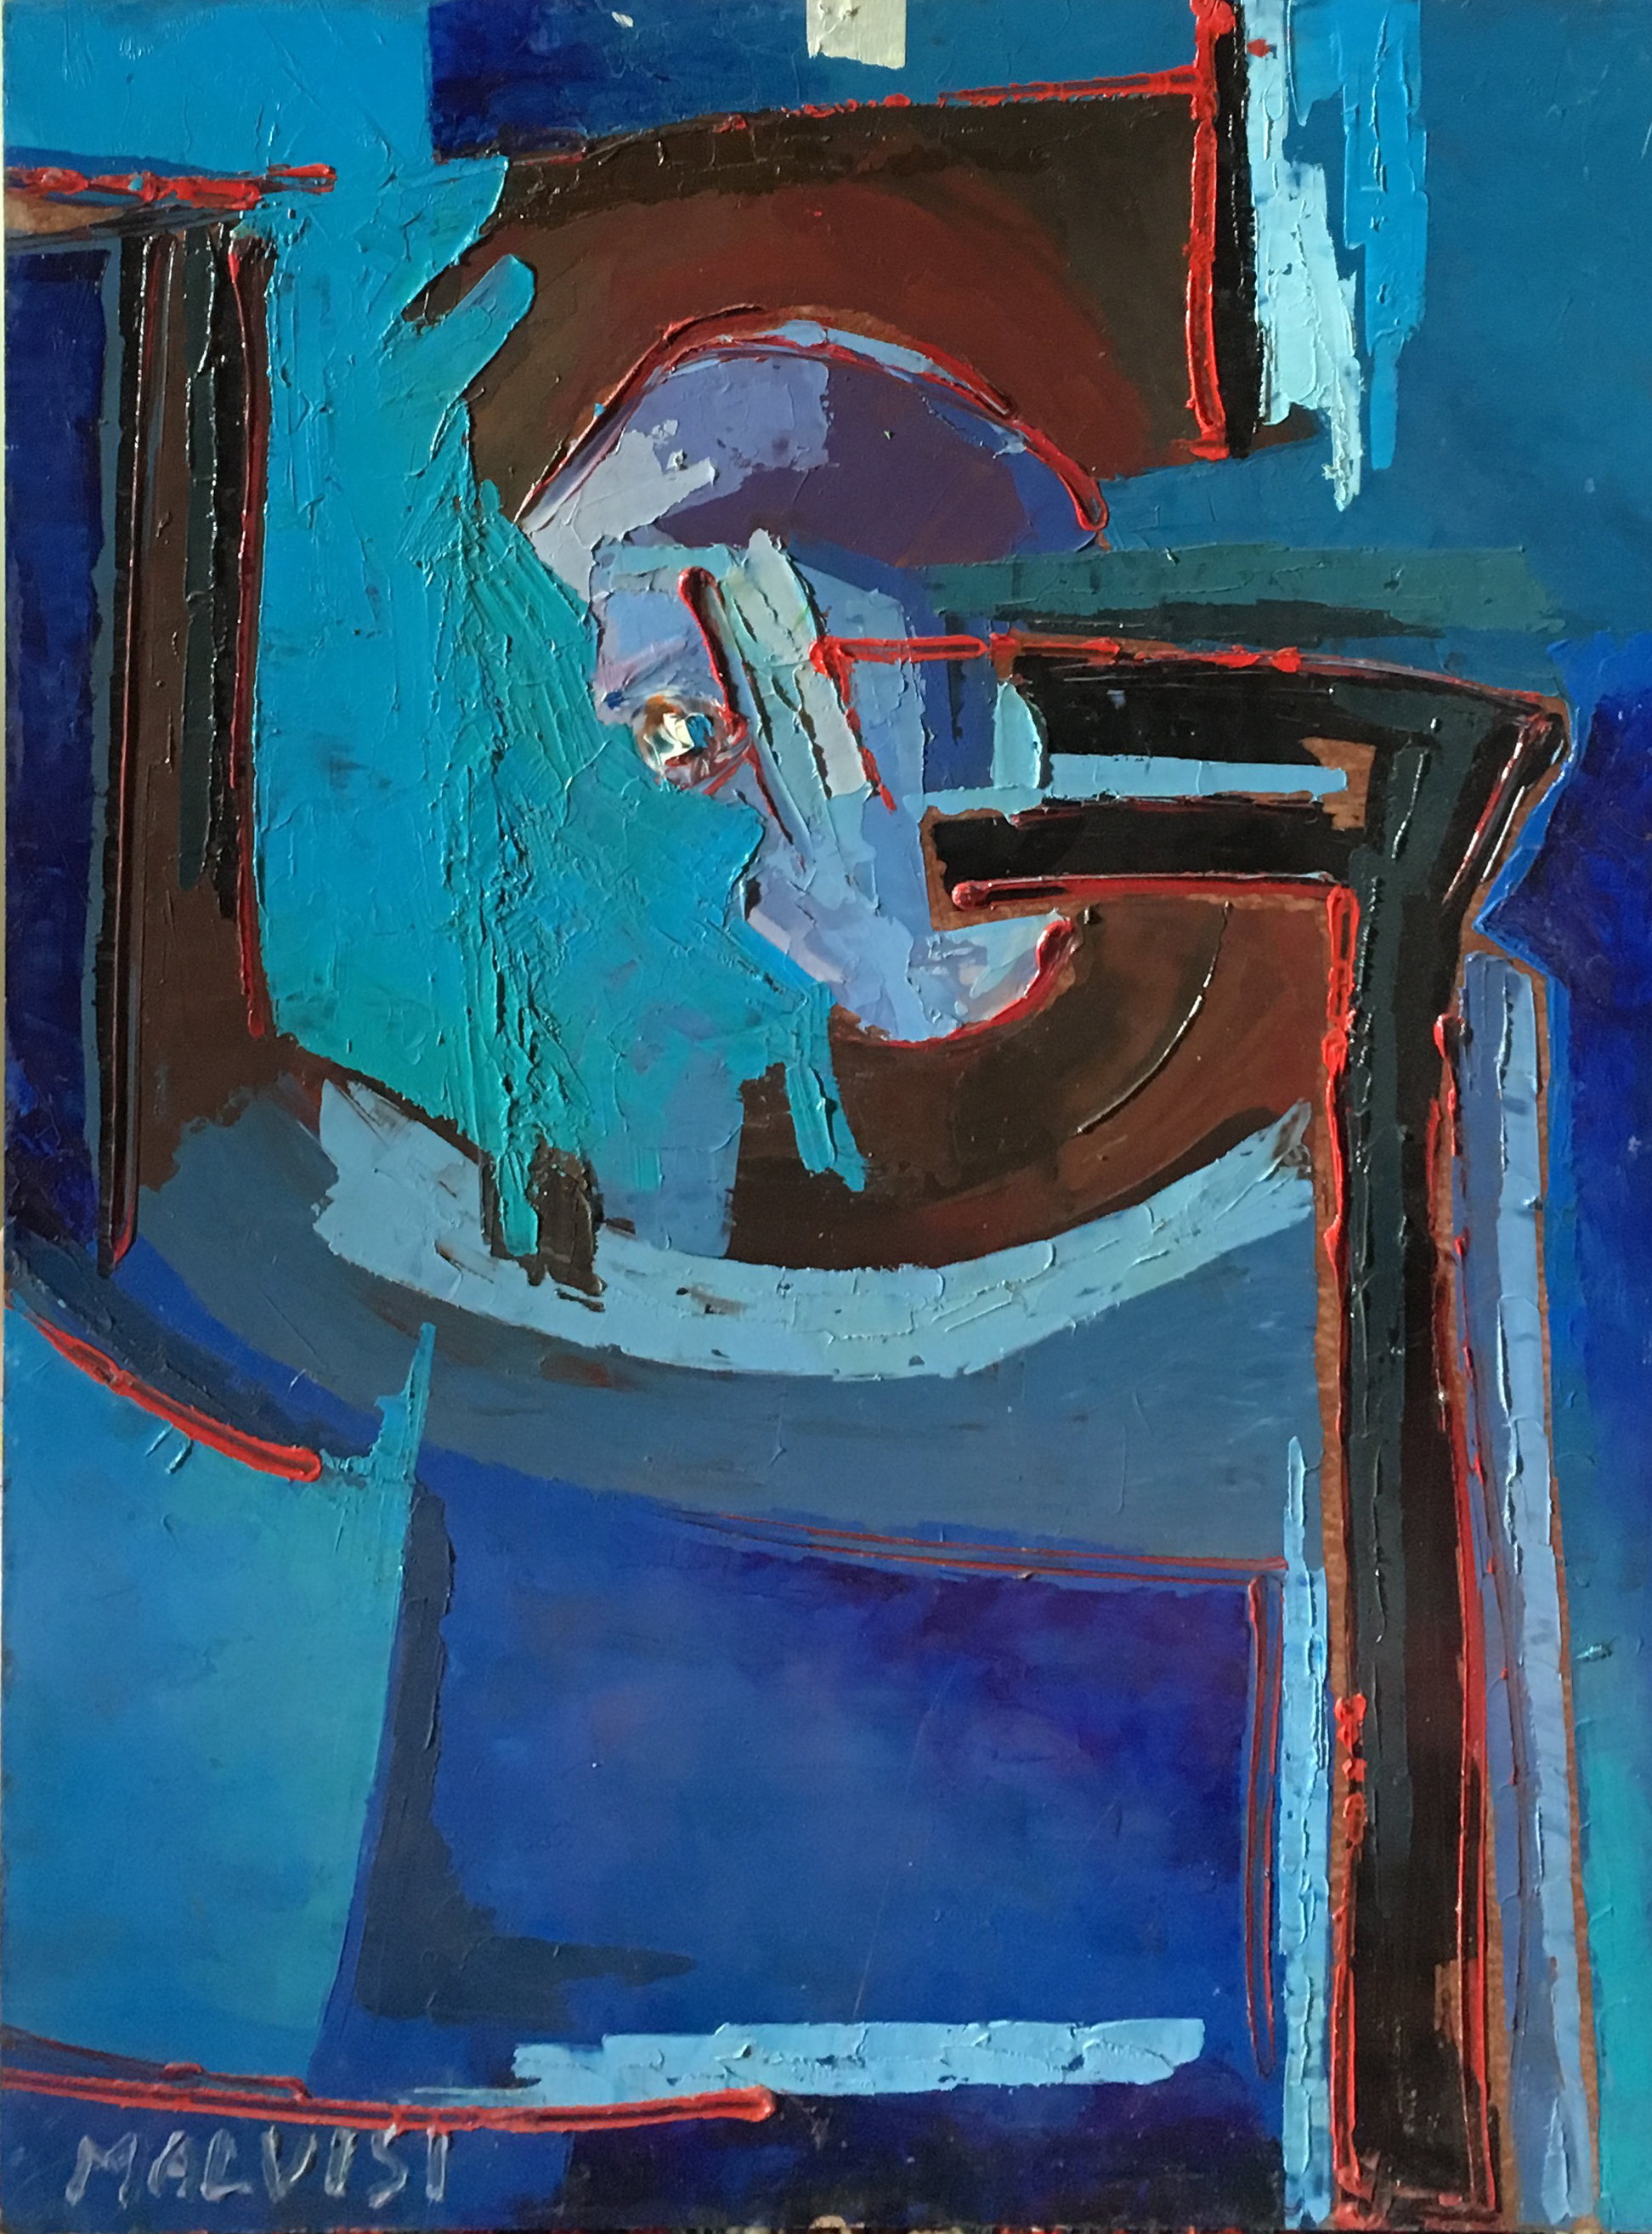 <b>Fragment of time</b><br> (Orig.Frammento di tempo) <br> 2001 Oil on wood <br> cm 60 x 80